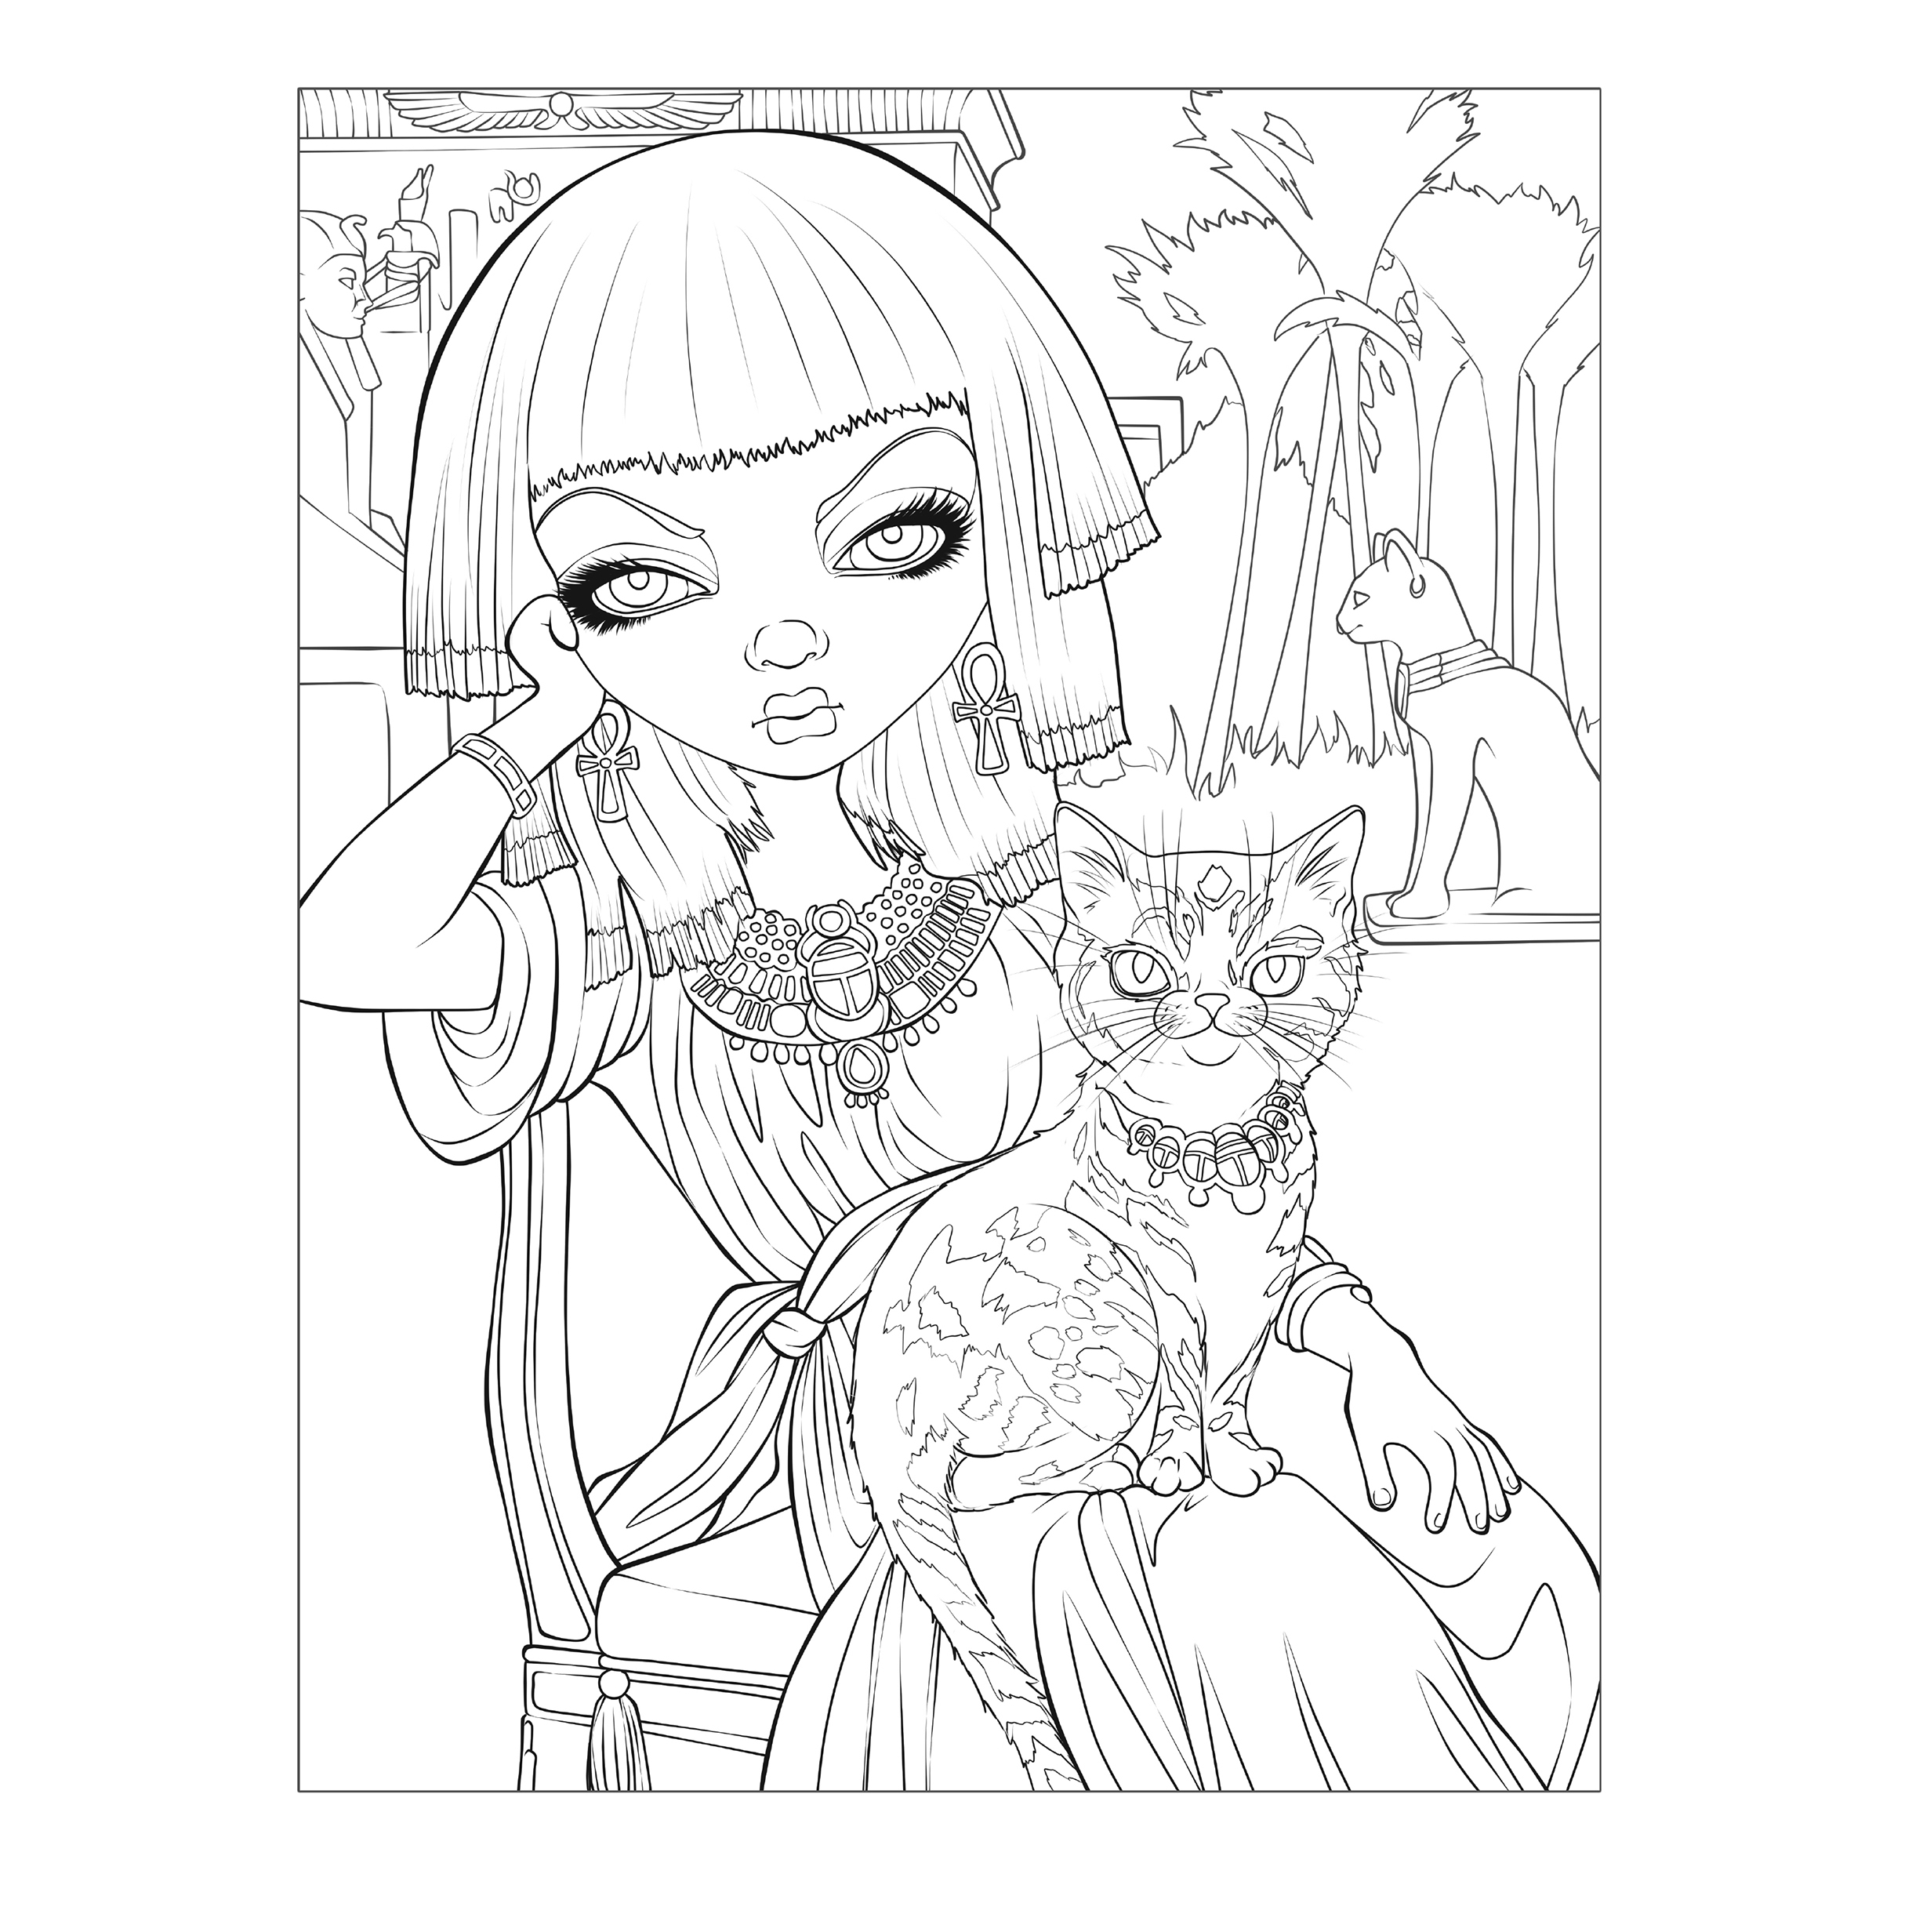 jasmine becket griffith coloring pages | Jasmine Becket- Griffith Colouring Book 9781922161871 | eBay